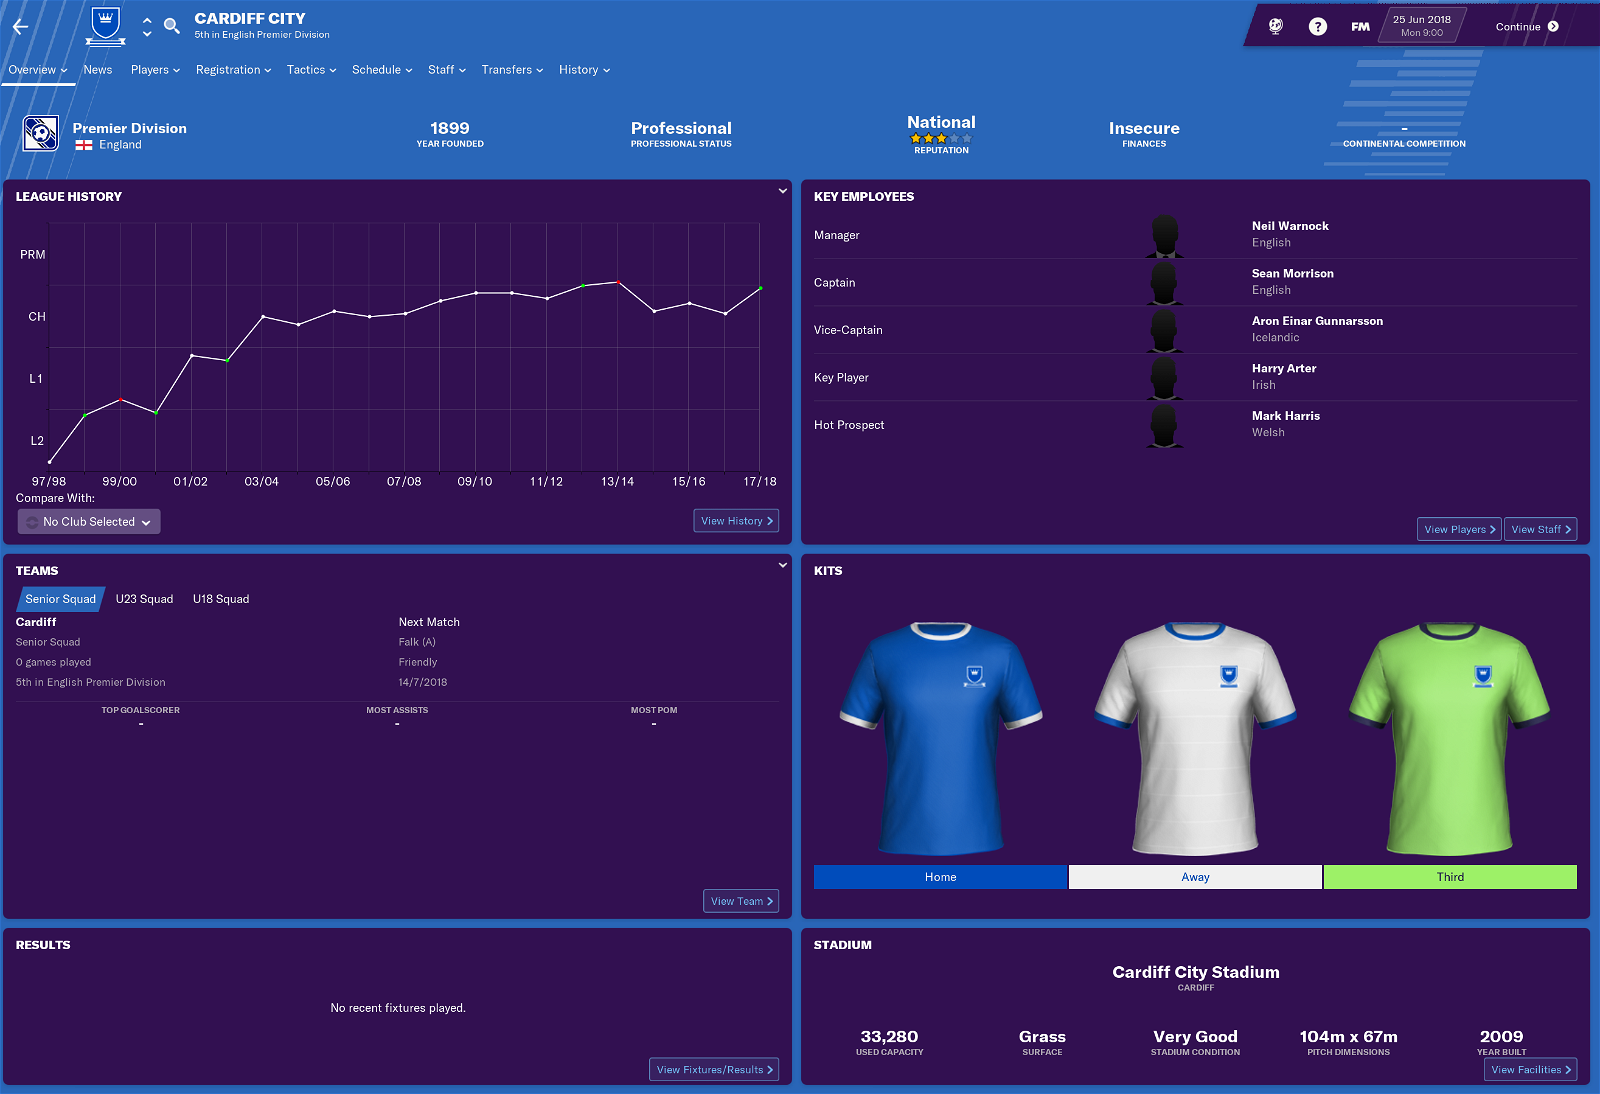 FM19 TEAM GUIDE CARDIFF CITY